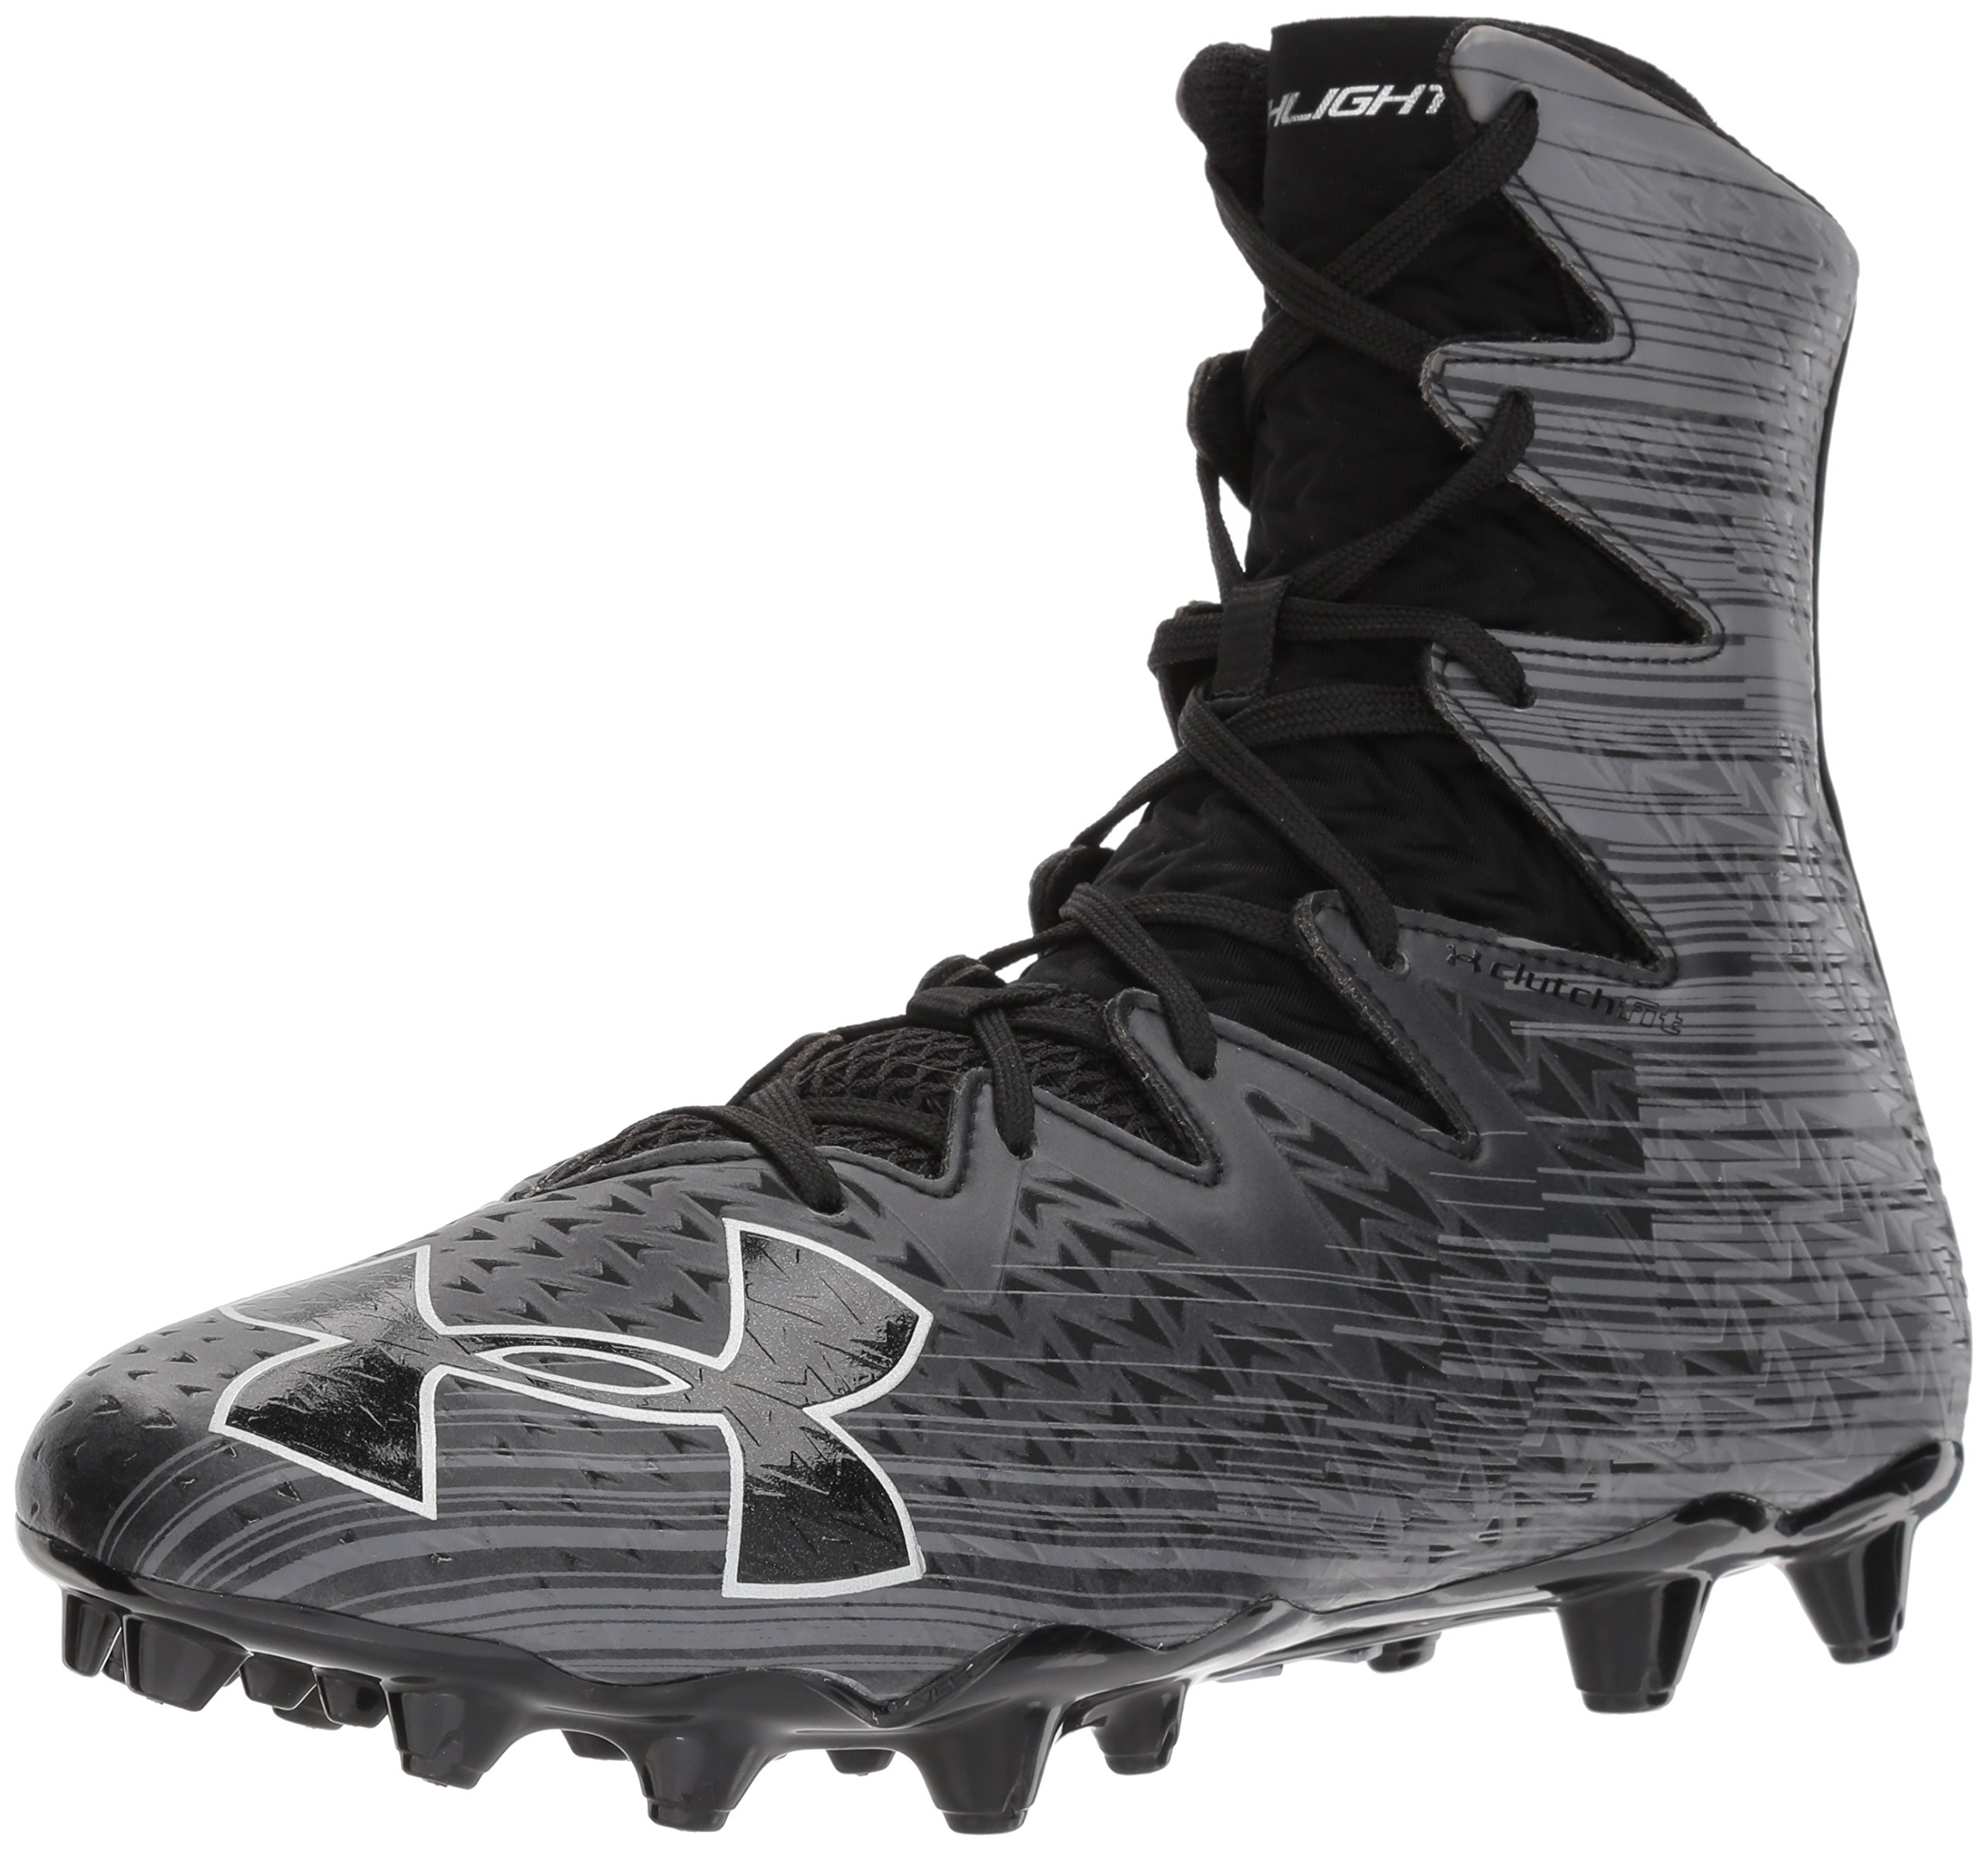 Under Armour Men's Highlight M.C. Lacrosse Shoe, Black, 12 by Under Armour